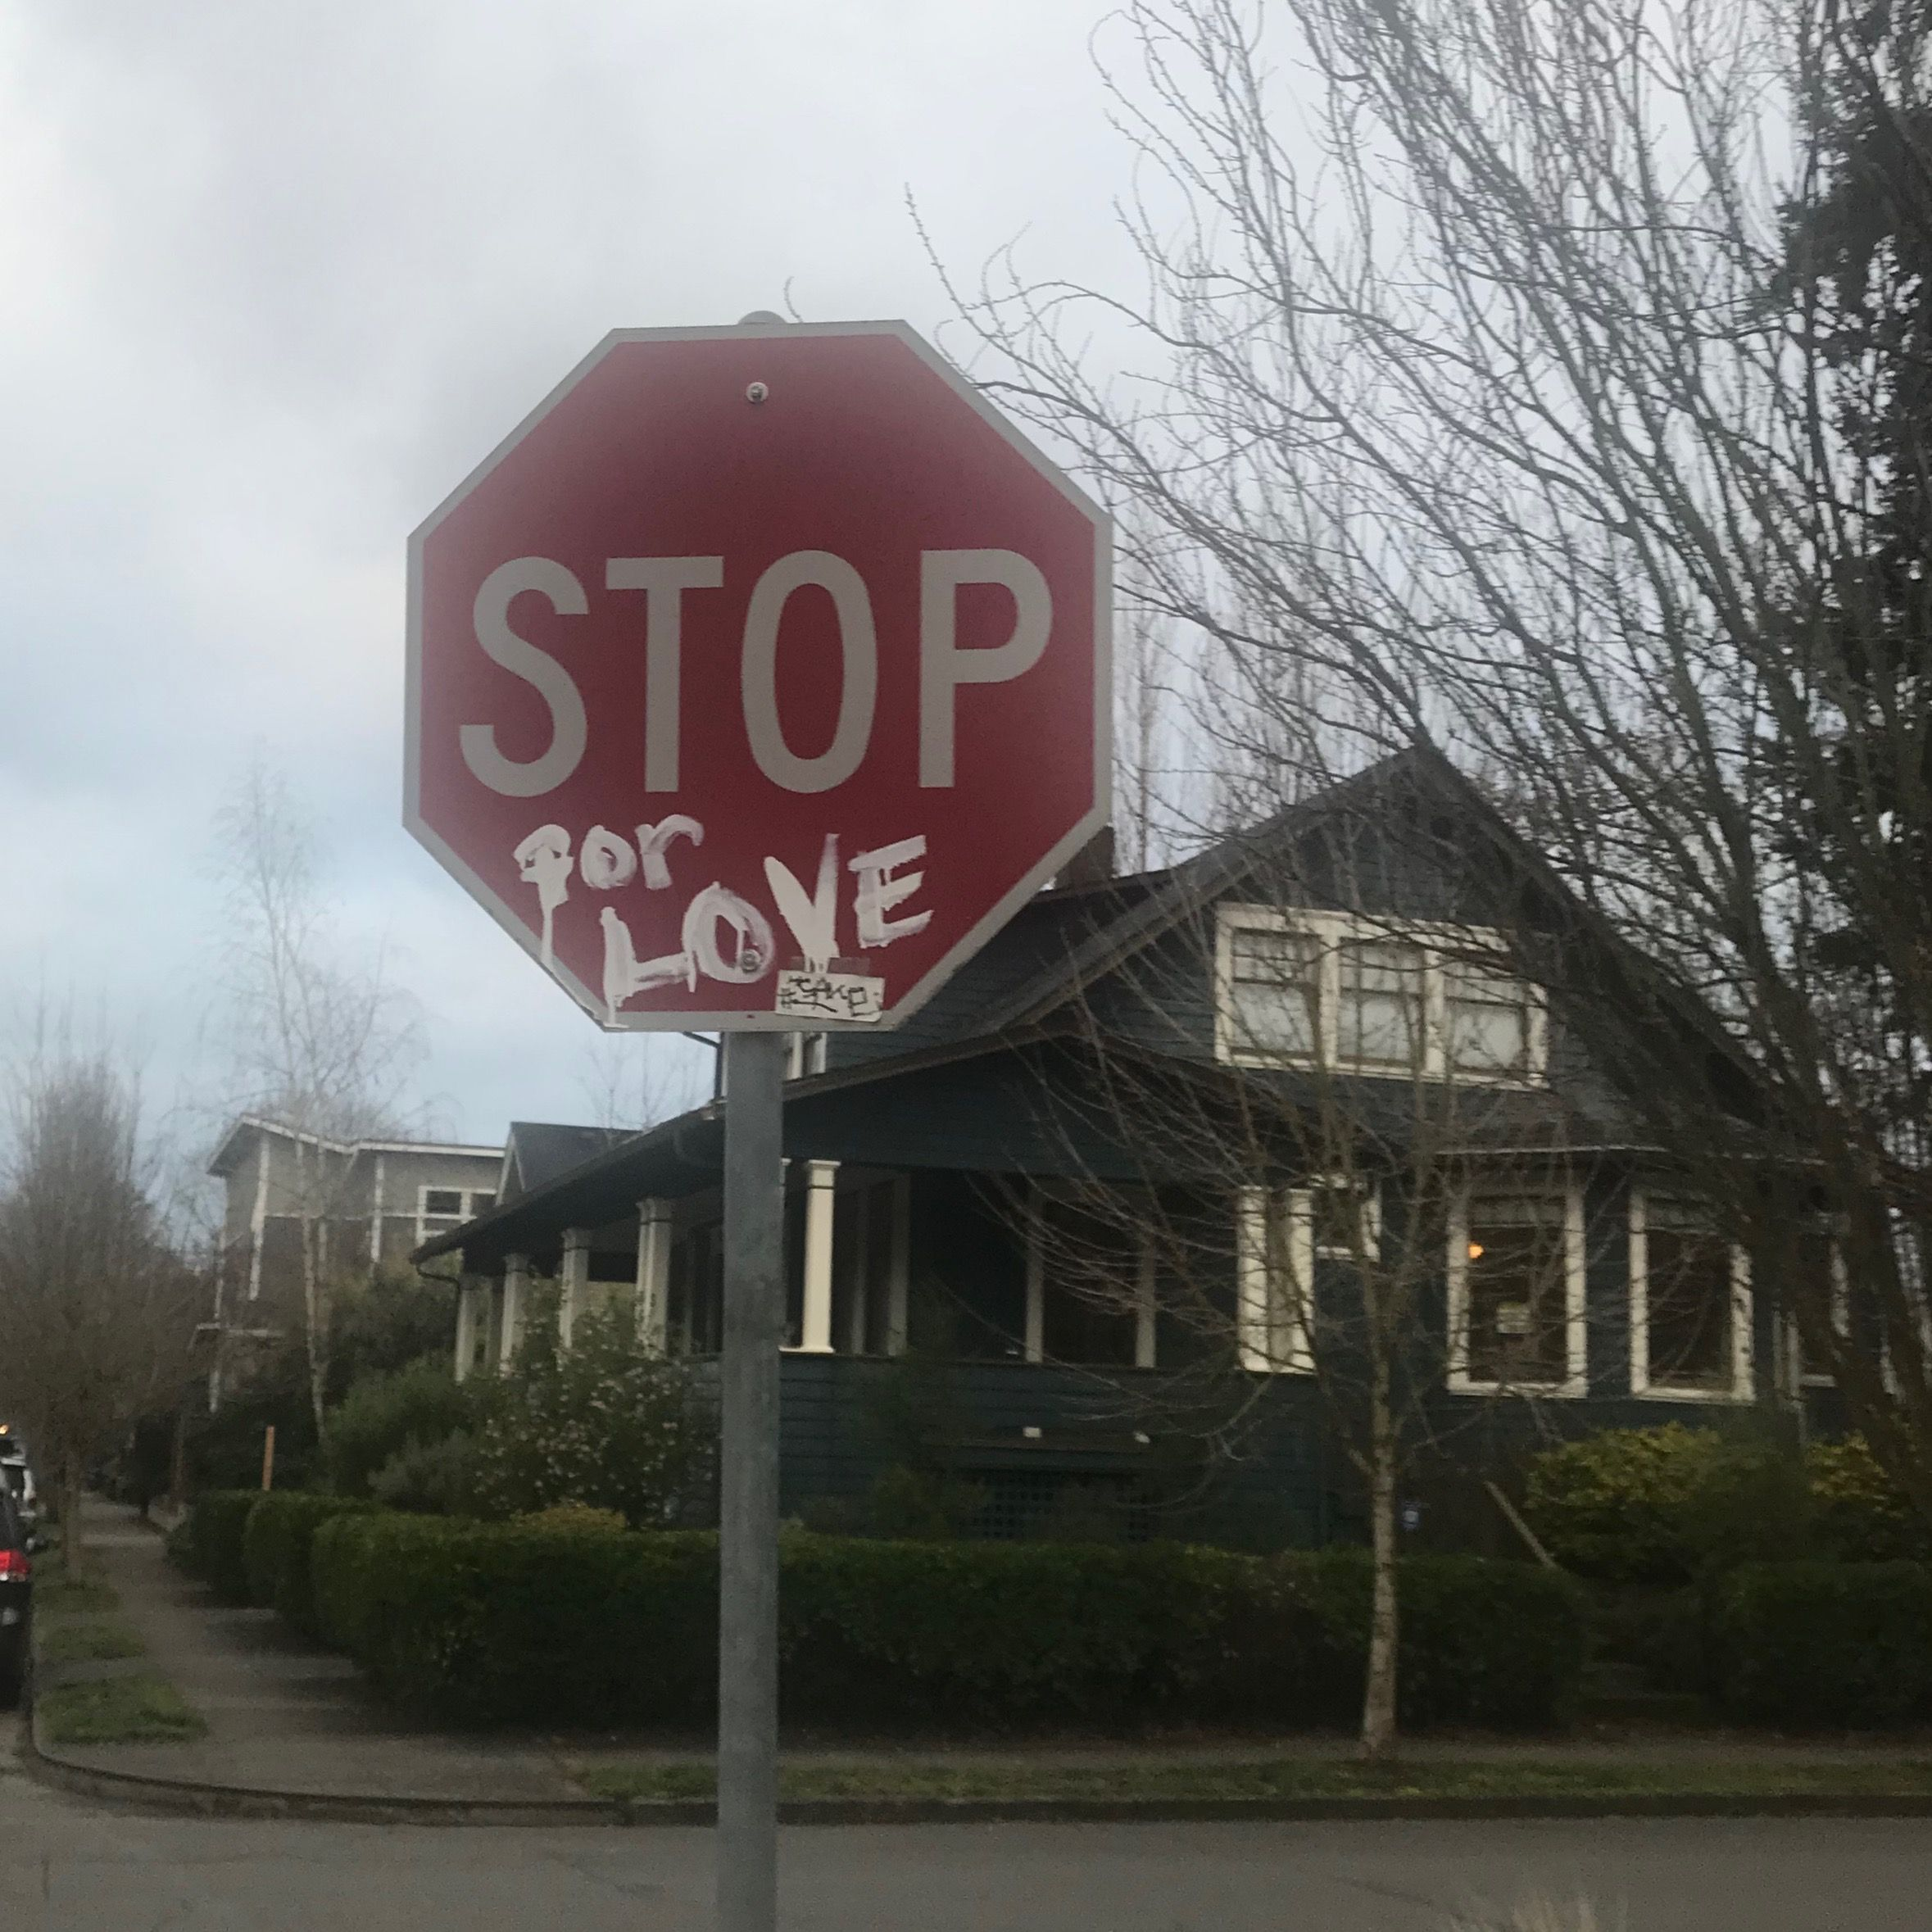 Stop for love, found on a run through NE Portland last week